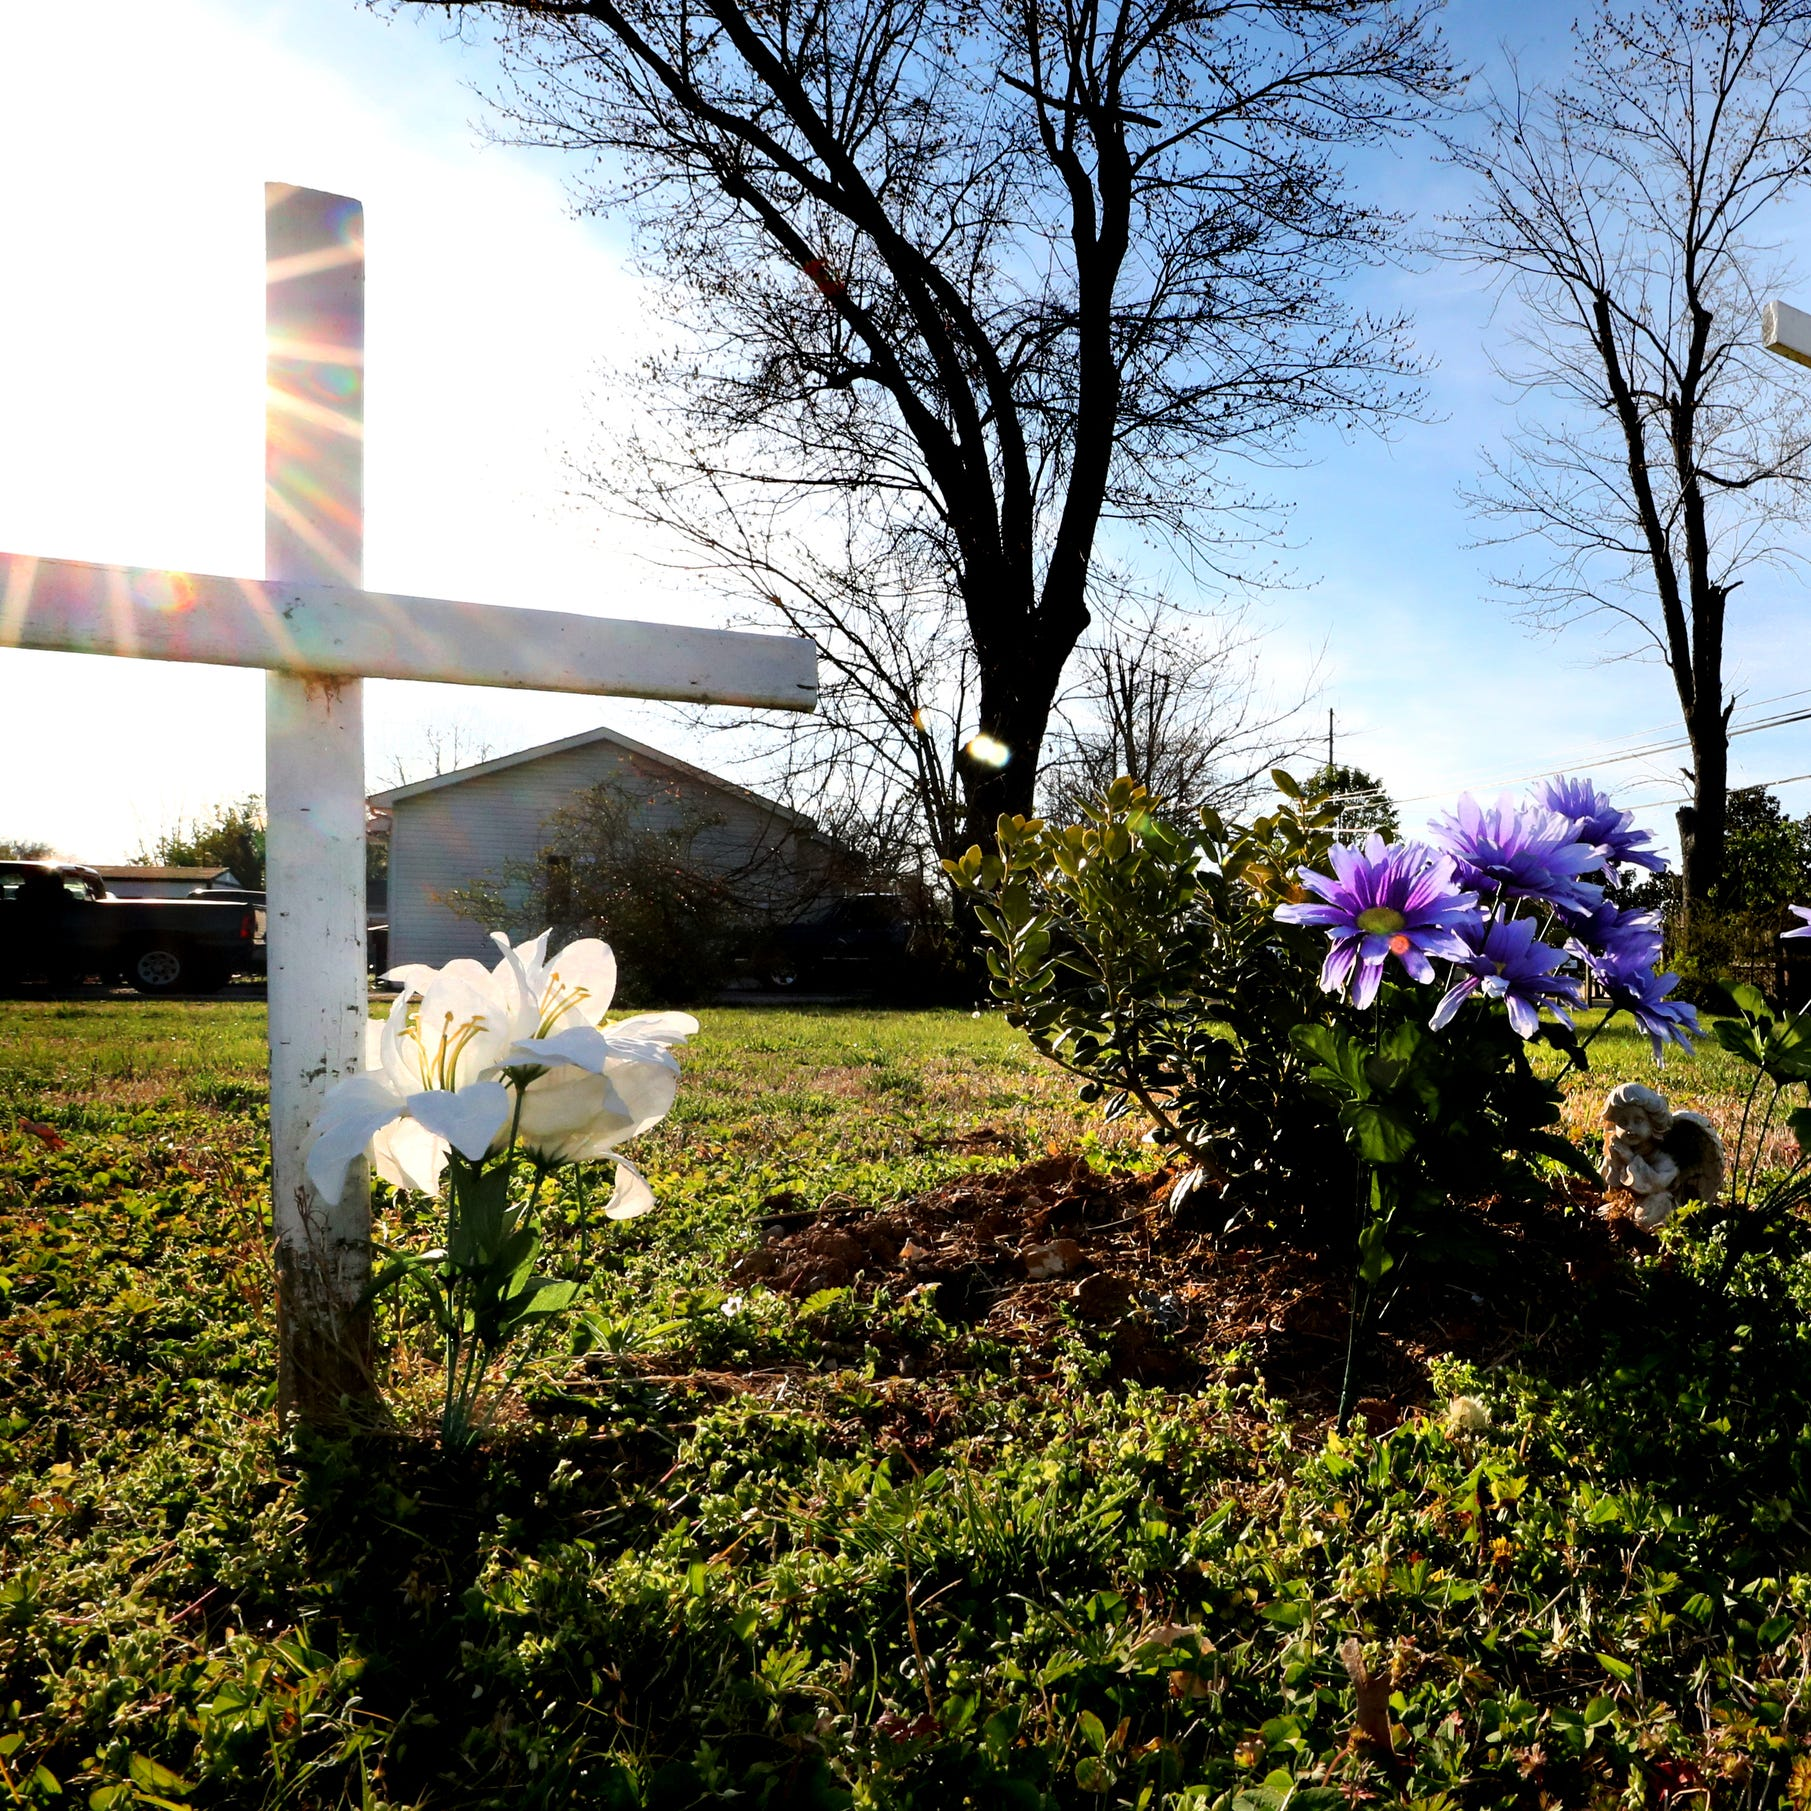 Murfreesboro Good Friday tornado: 10 years later, scars across landscape linger